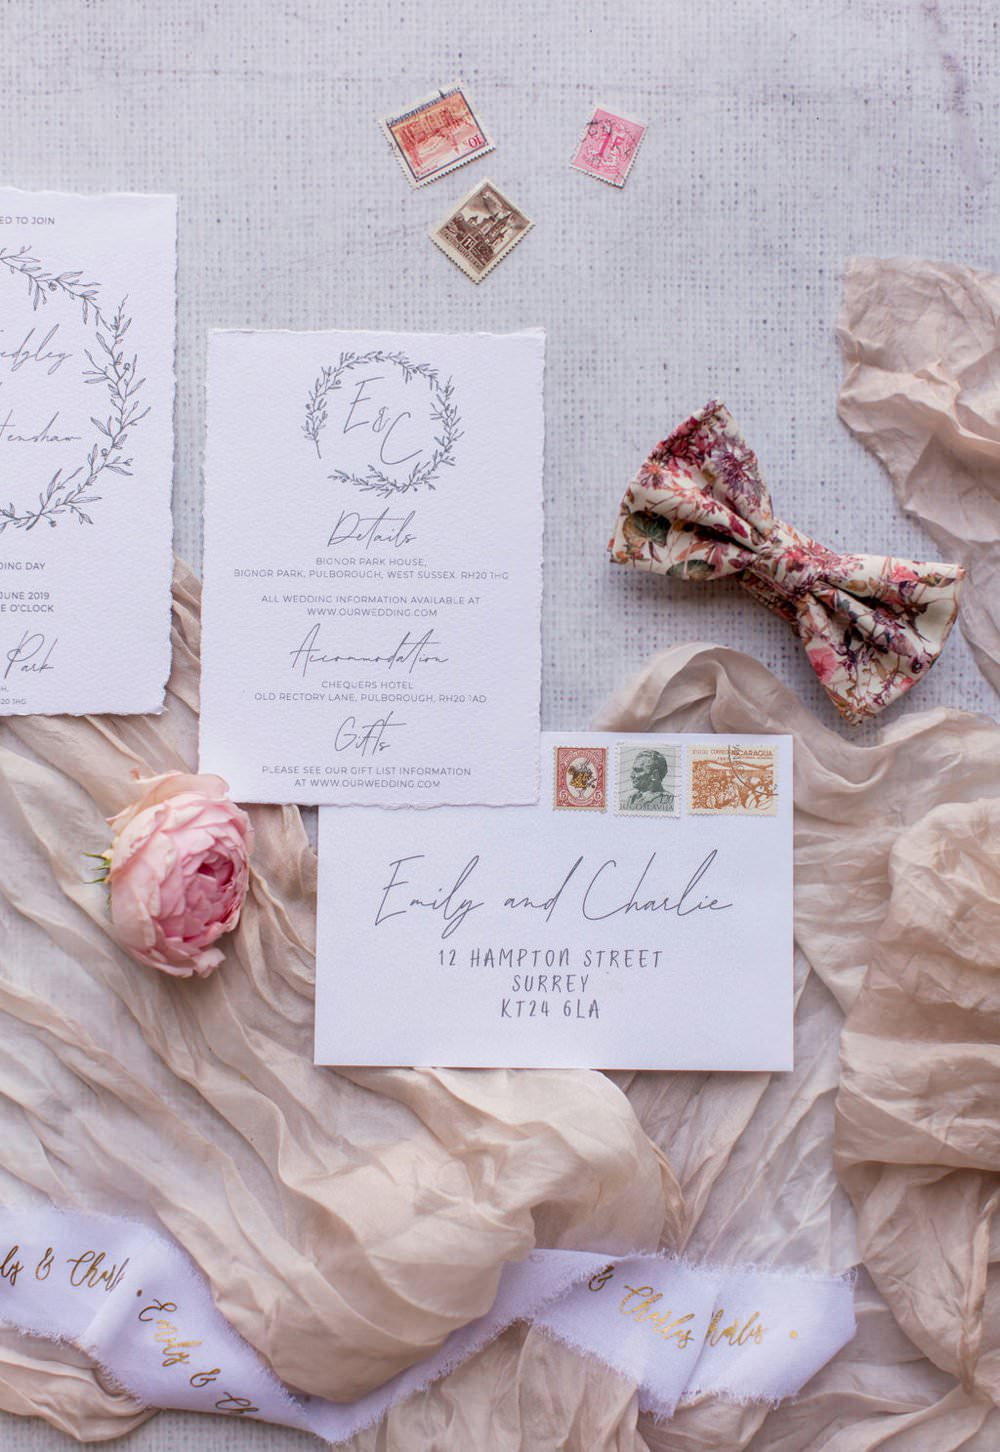 Stationery Suite Invite Invitations Floral Pastel Soft Pink Floral Calligraphy English Garden Wedding Inspiration Philippa Sian Photography